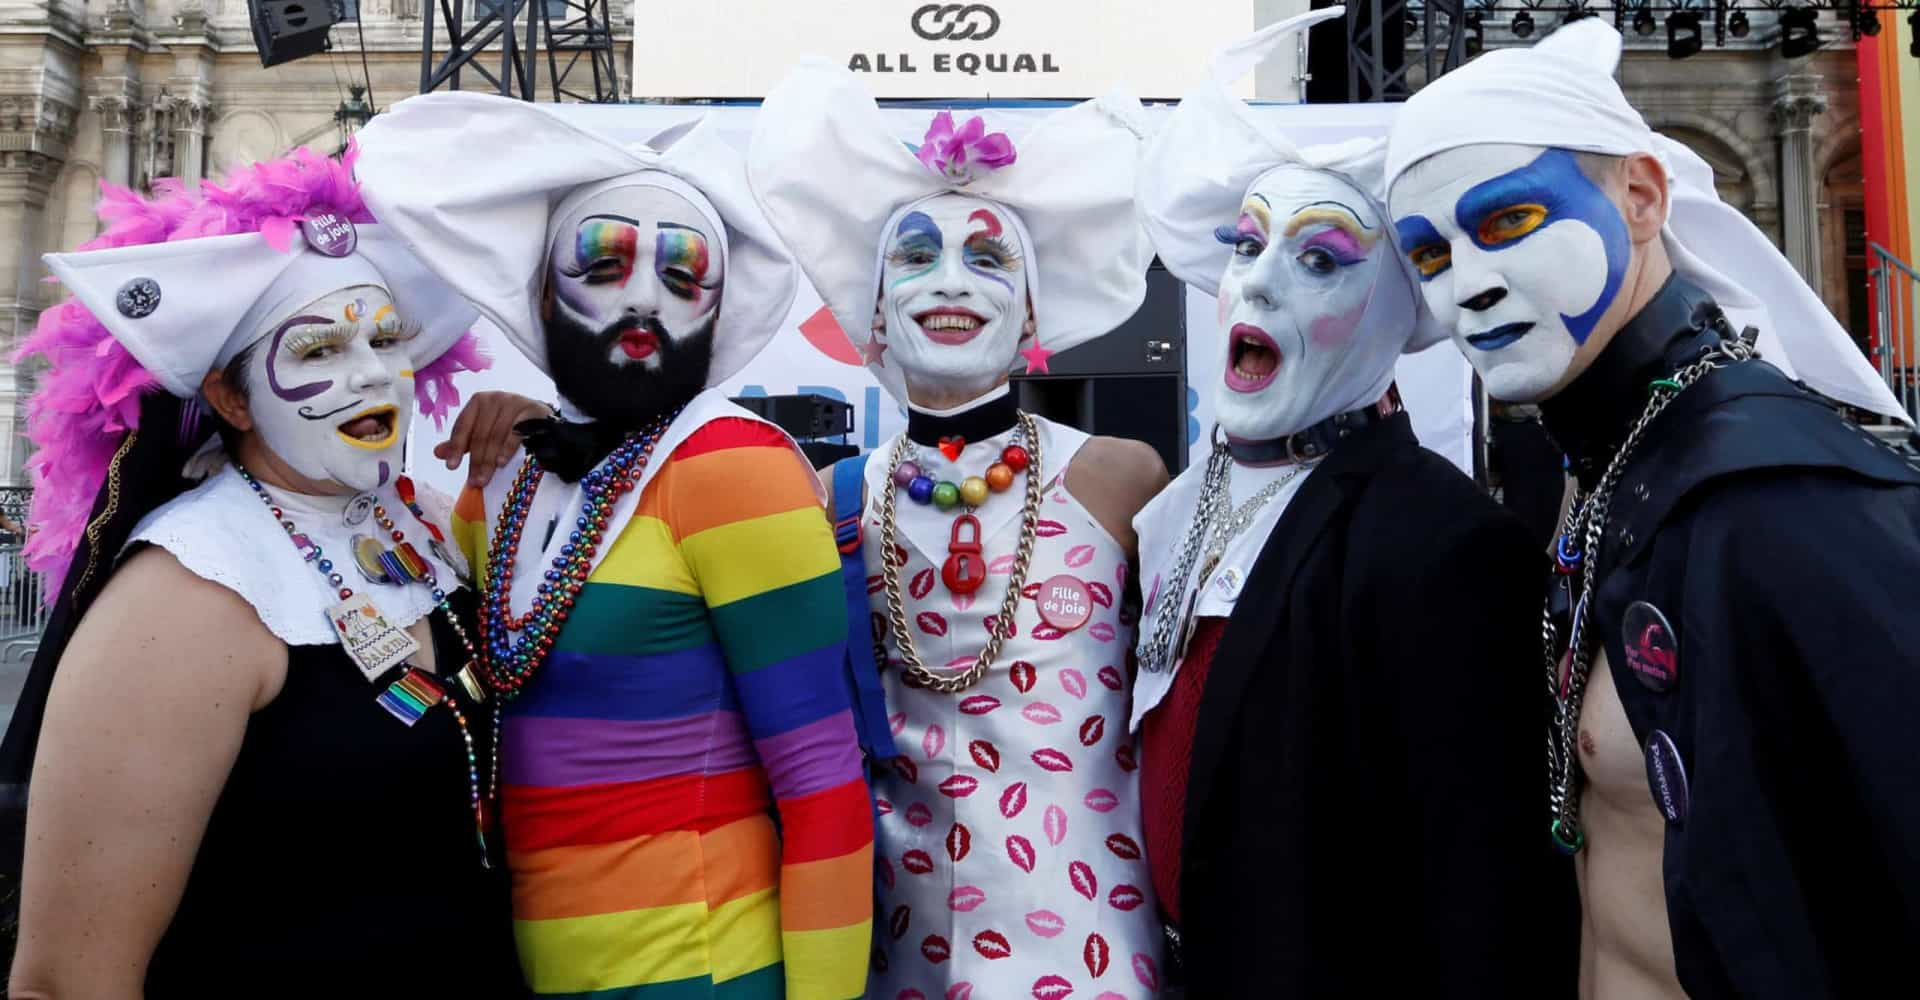 Forty years of the Sisters of Perpetual Indulgence